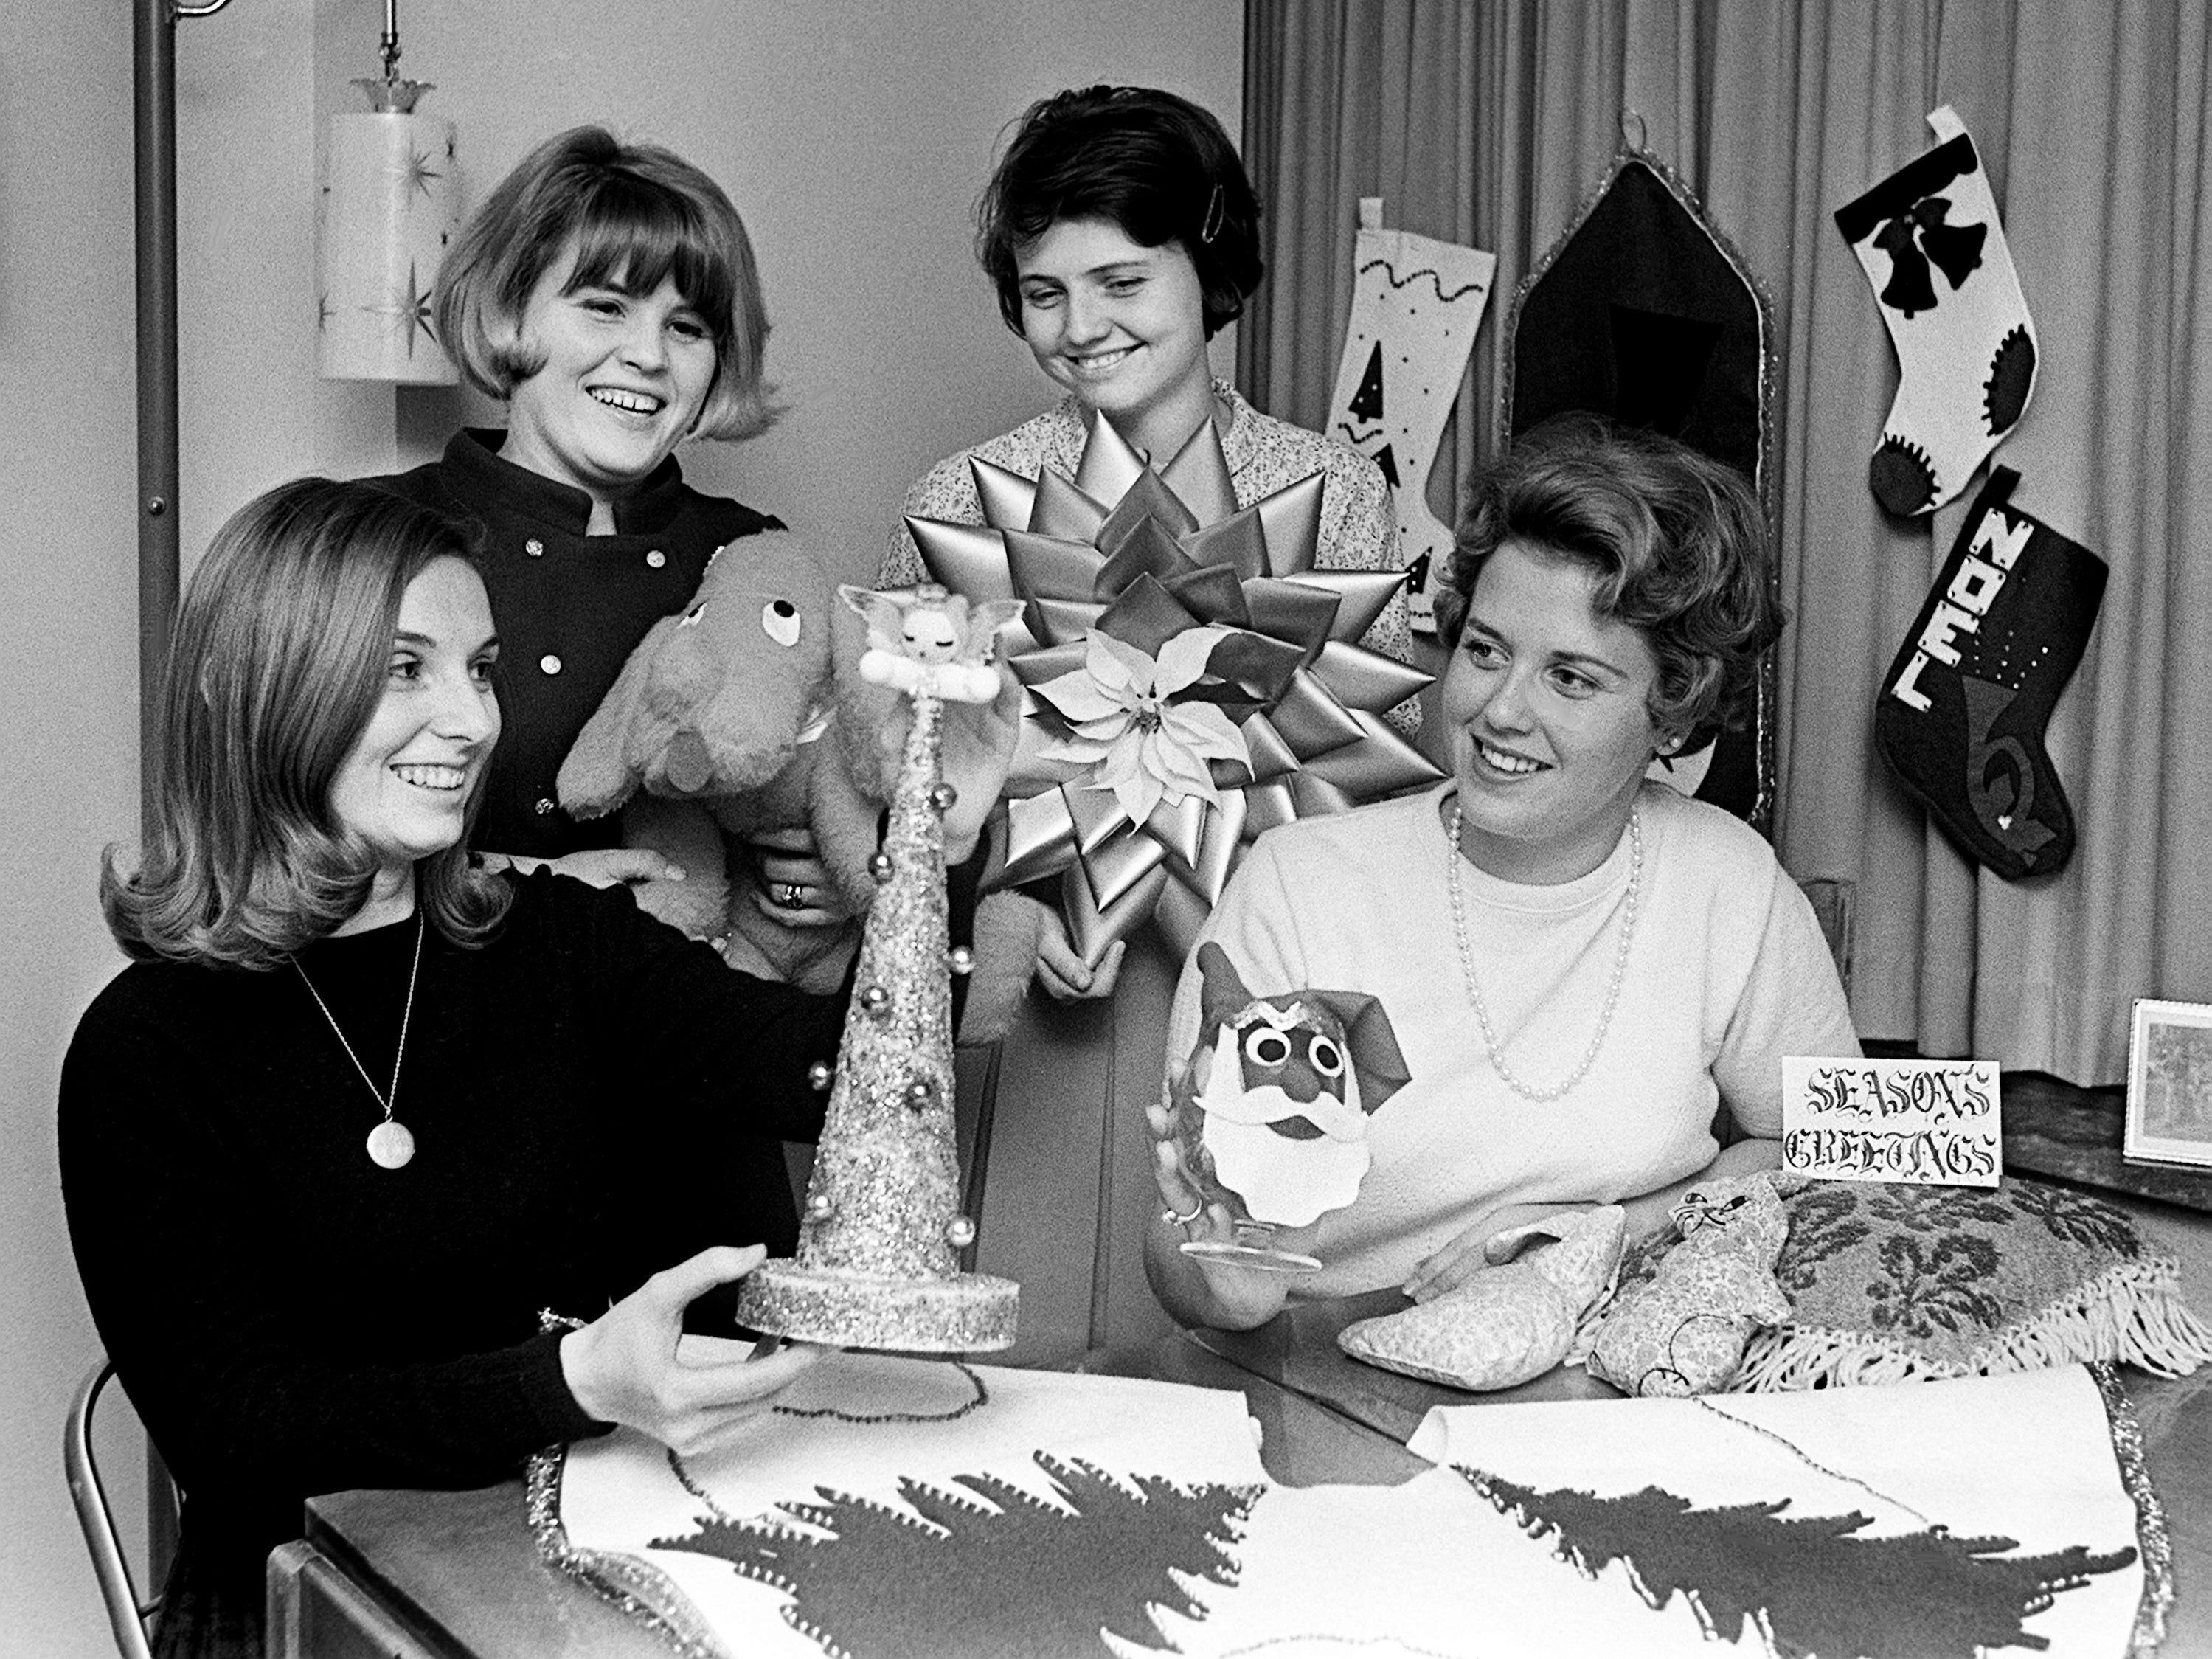 Mrs. Frank Coffman, left, Mrs. Michael Wachter, Mrs. David Thoennes, and Mrs. Philip Engelhardt, members of Vanderbilt Student Wives, are making plans Nov. 11, 1968 for their upcoming sponsored Christmas Bazaar at the Morgan House.